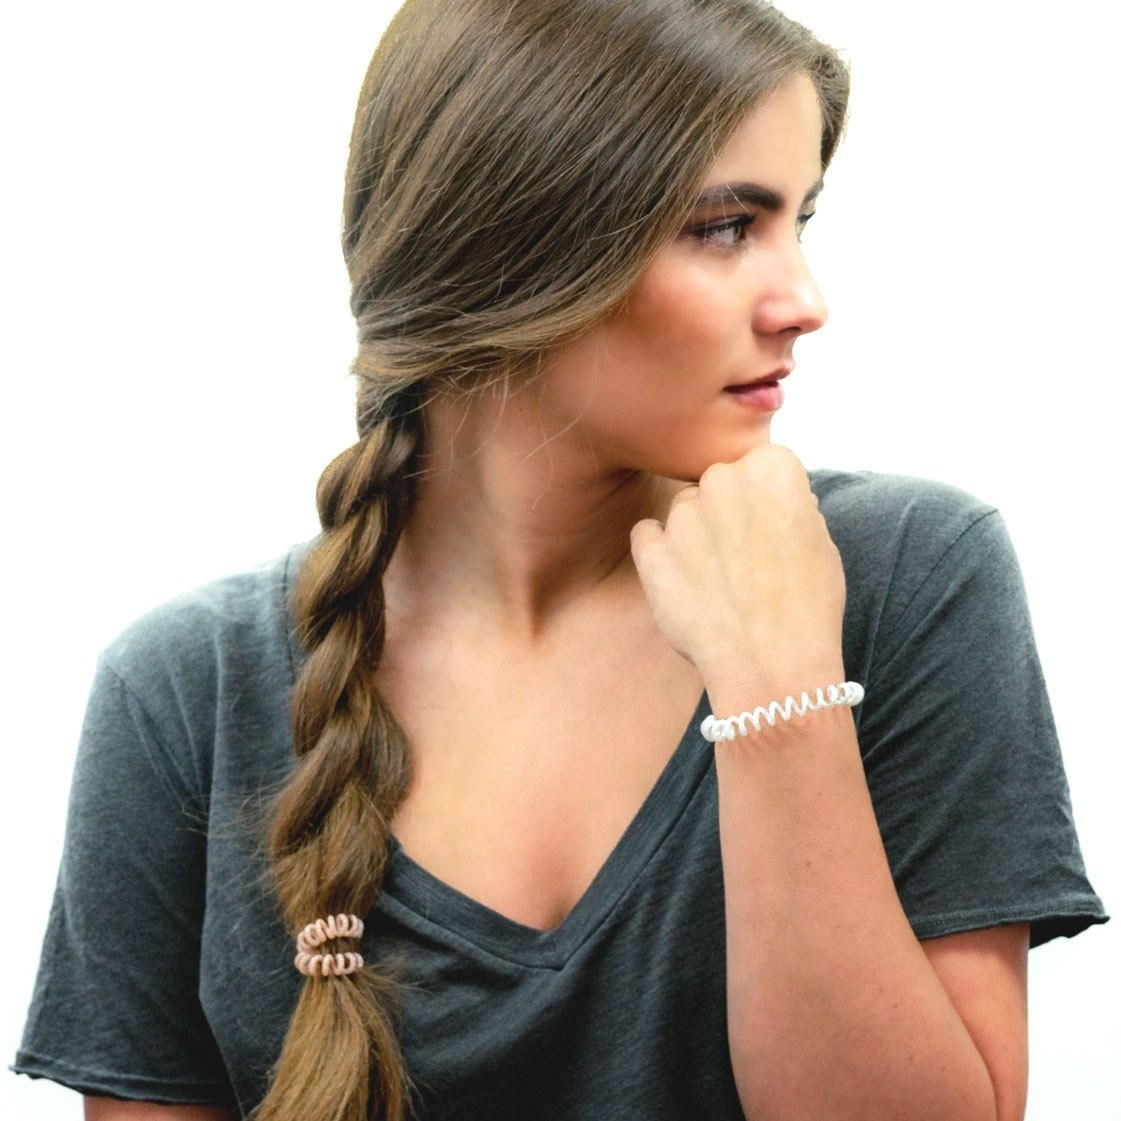 A model with one cord on a braid and one on their wrist